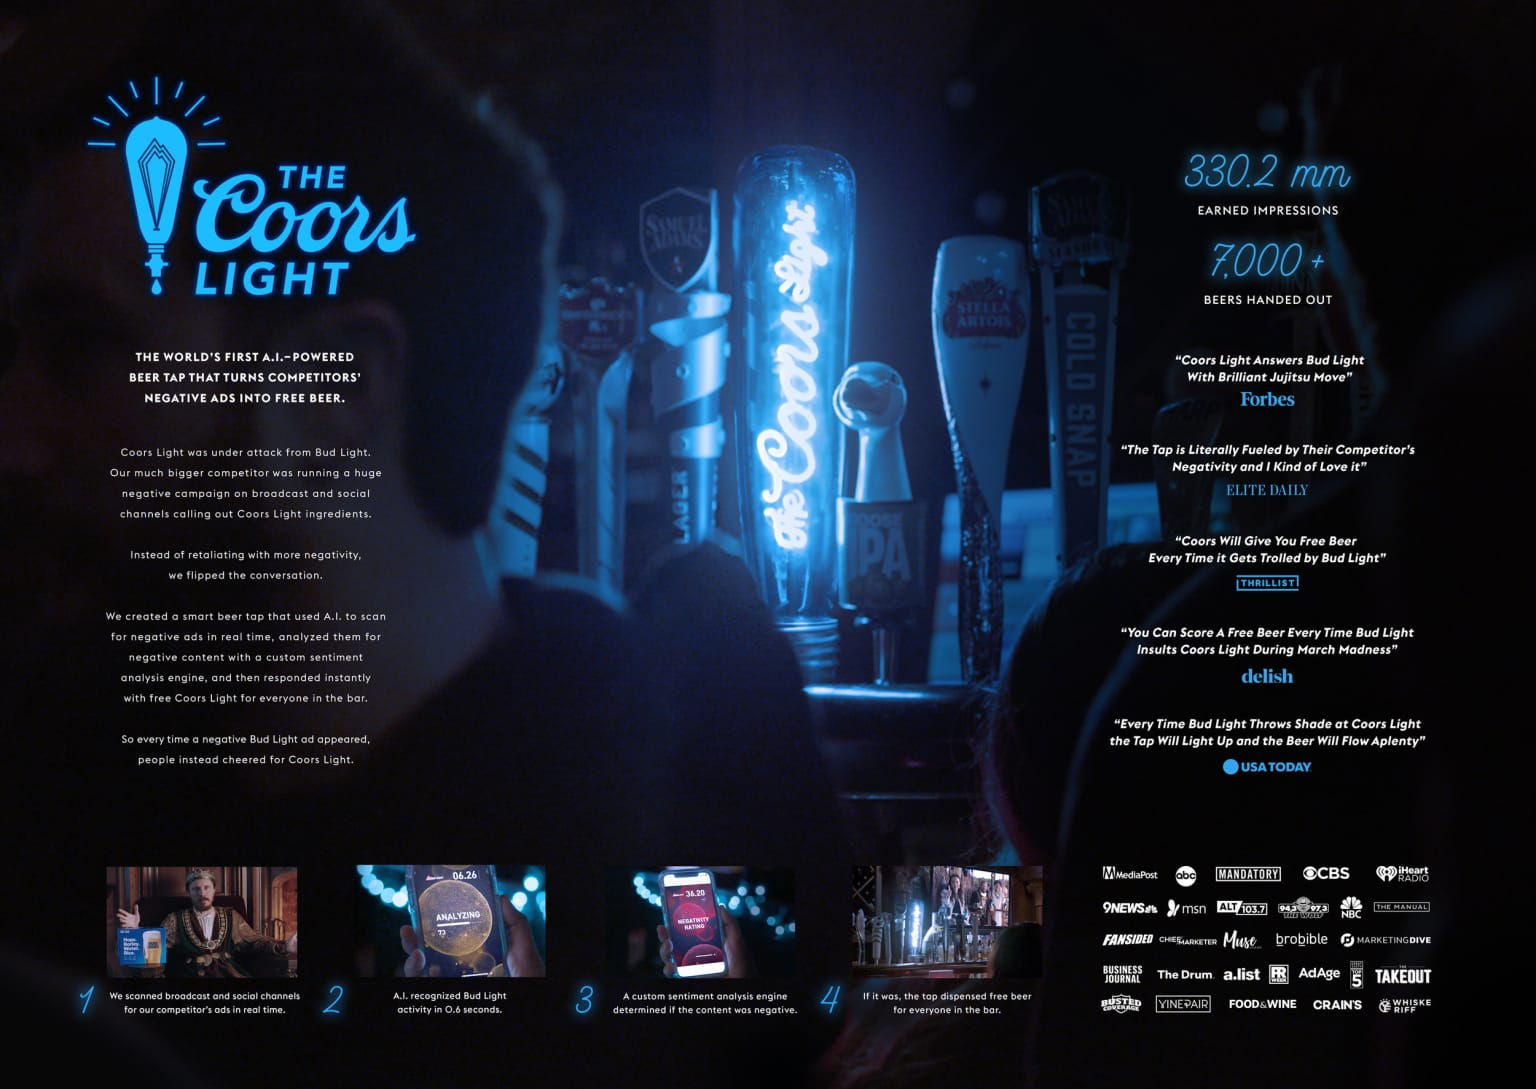 The Coors Light